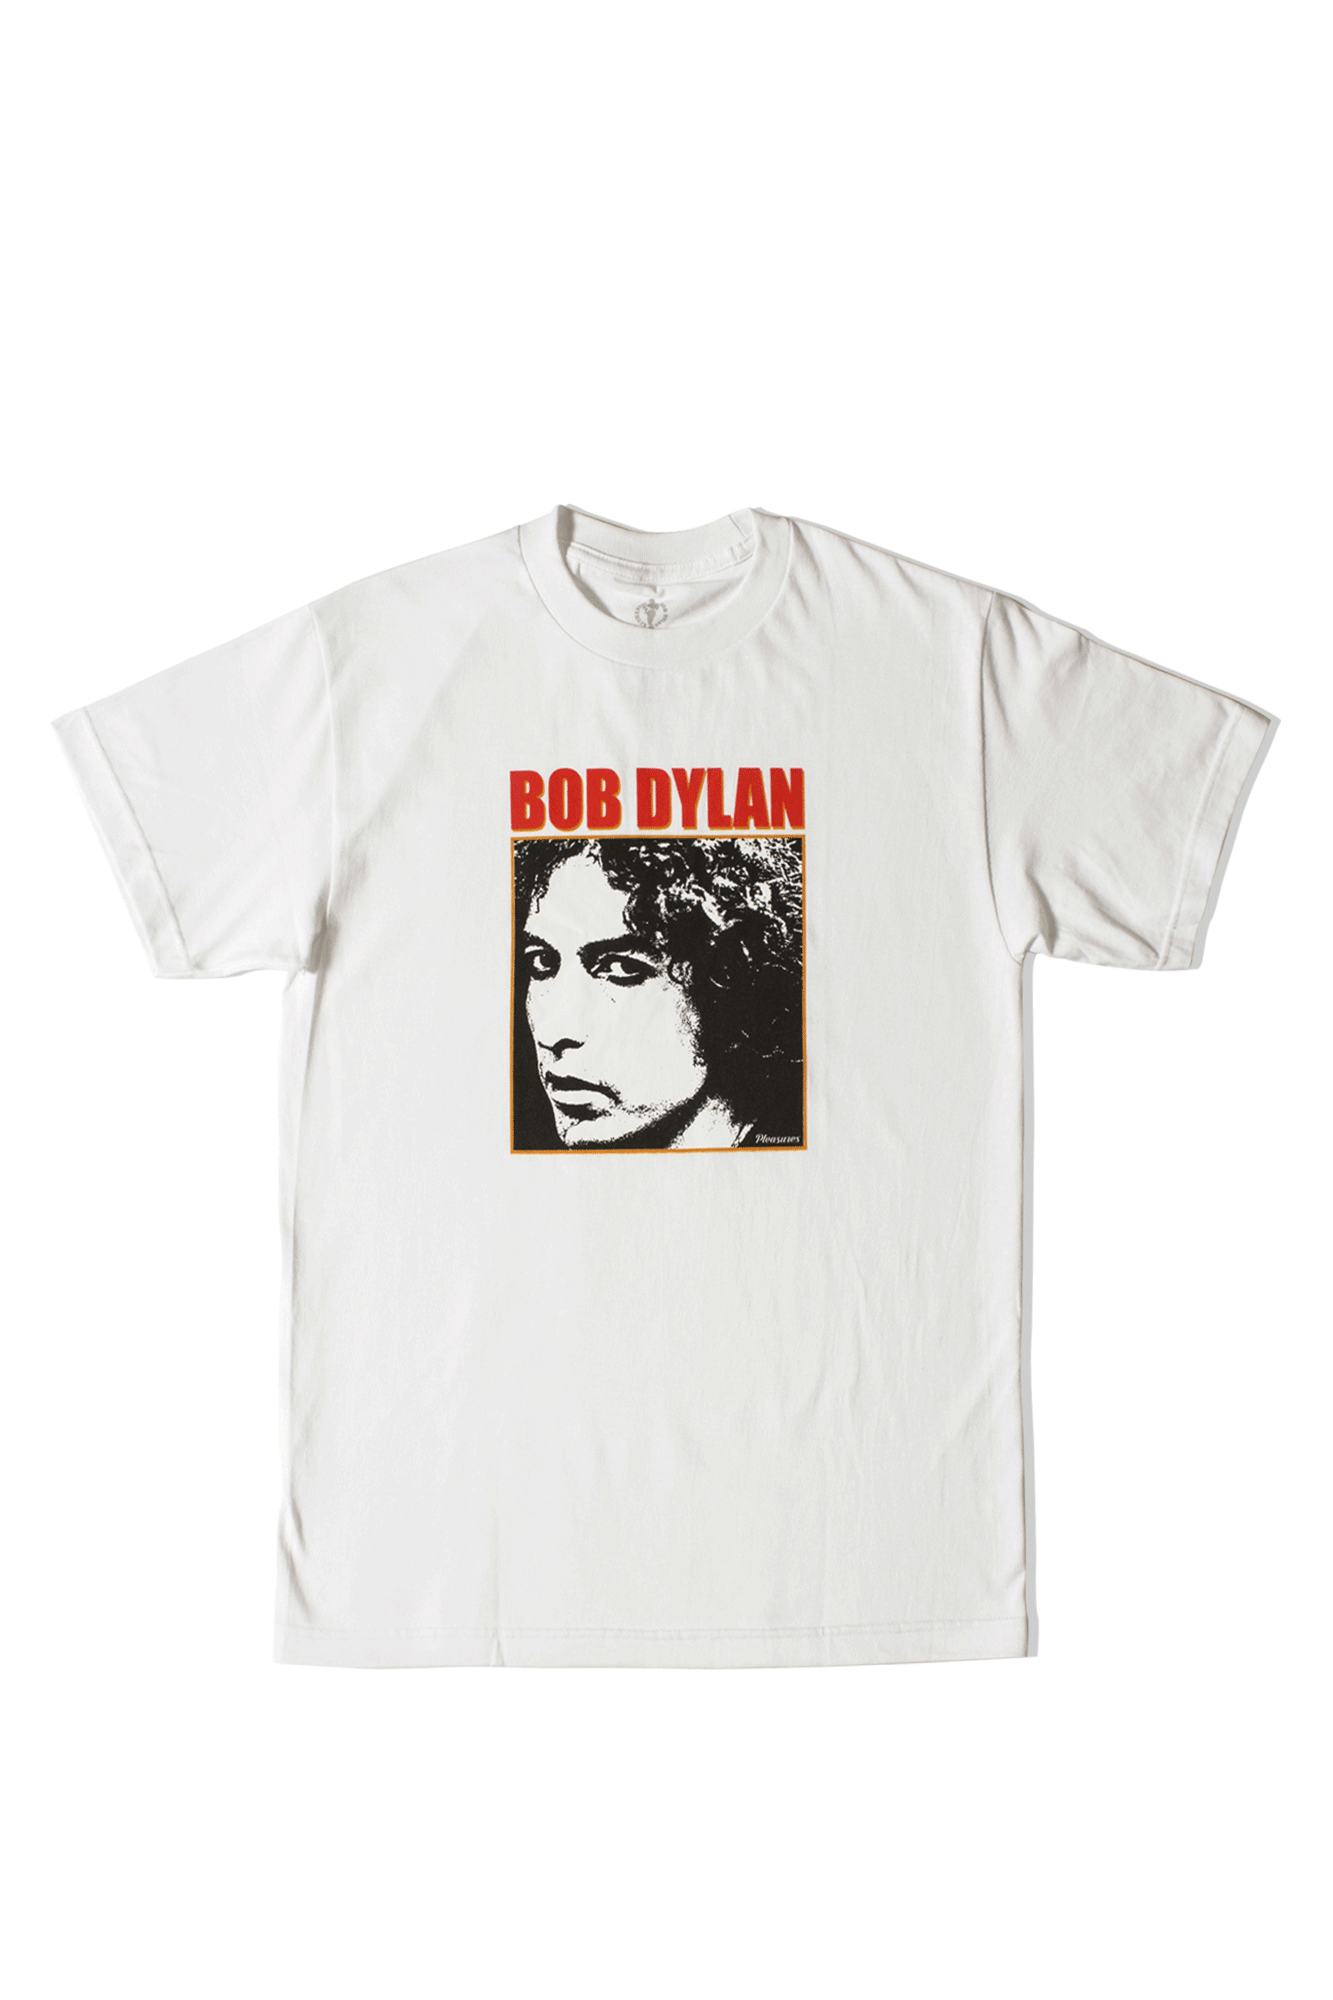 Bob Dylan Home T-Shirt White